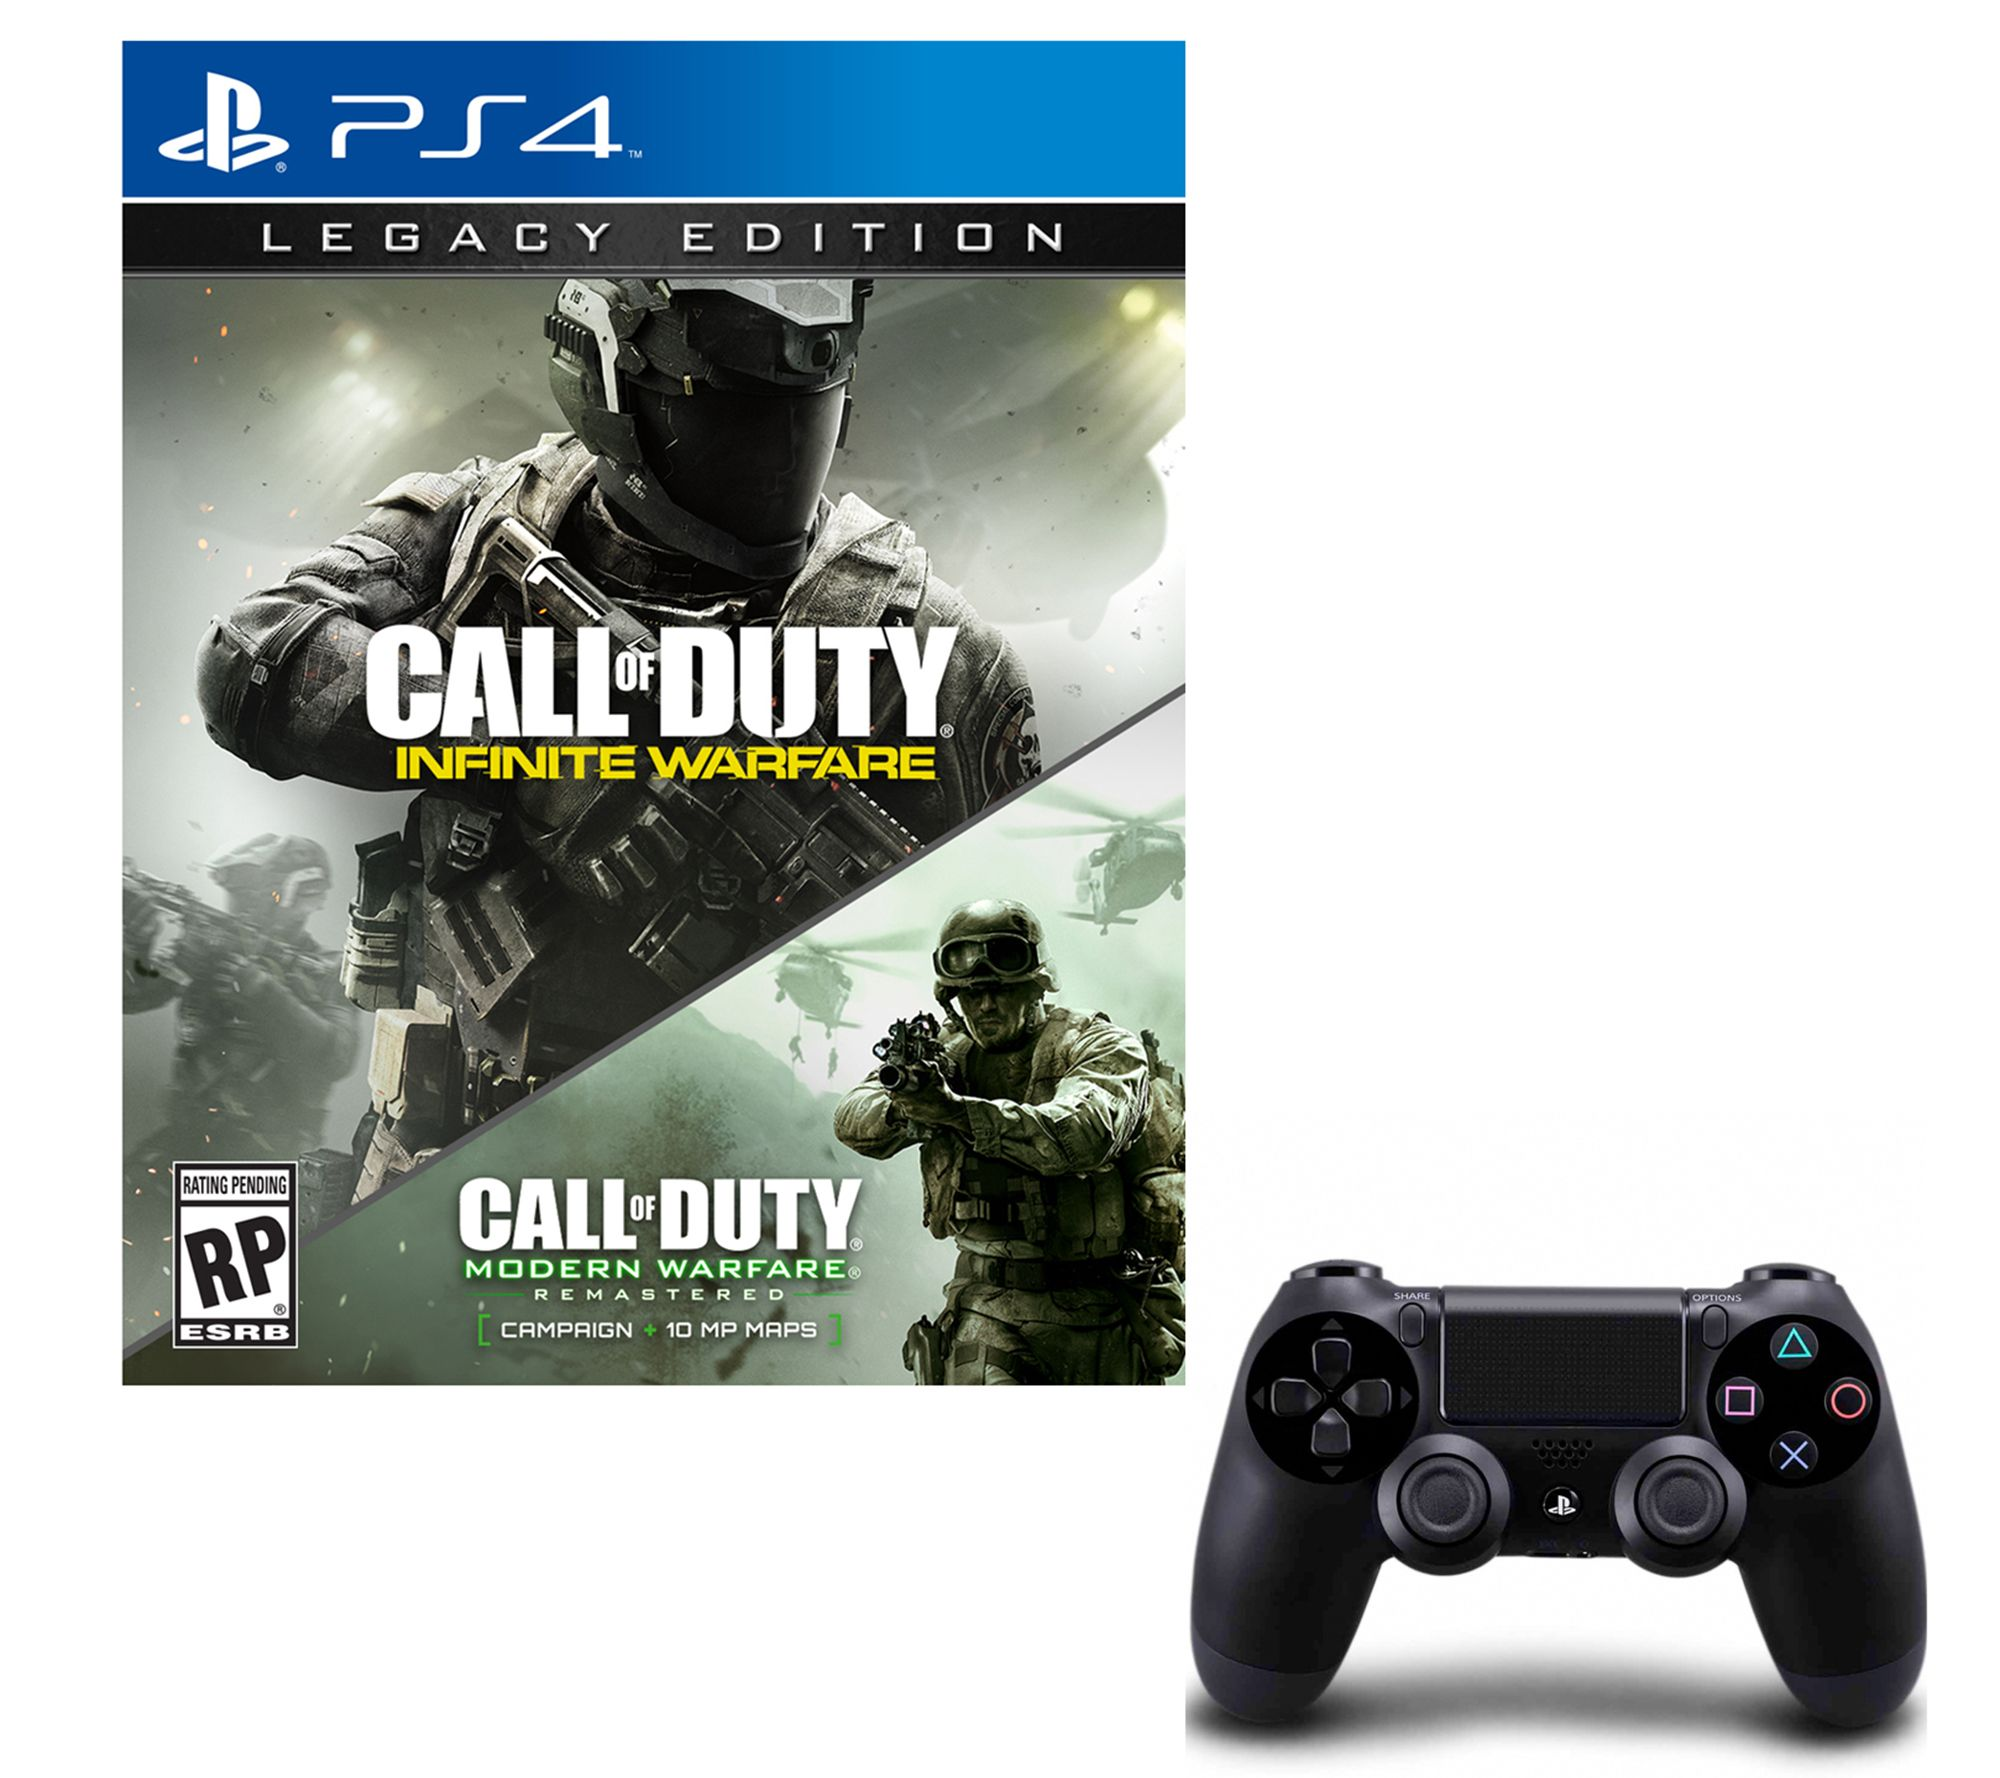 Call of Duty: Infinite Warfare Legacy Edtn. & PS4 Controller — QVC.com